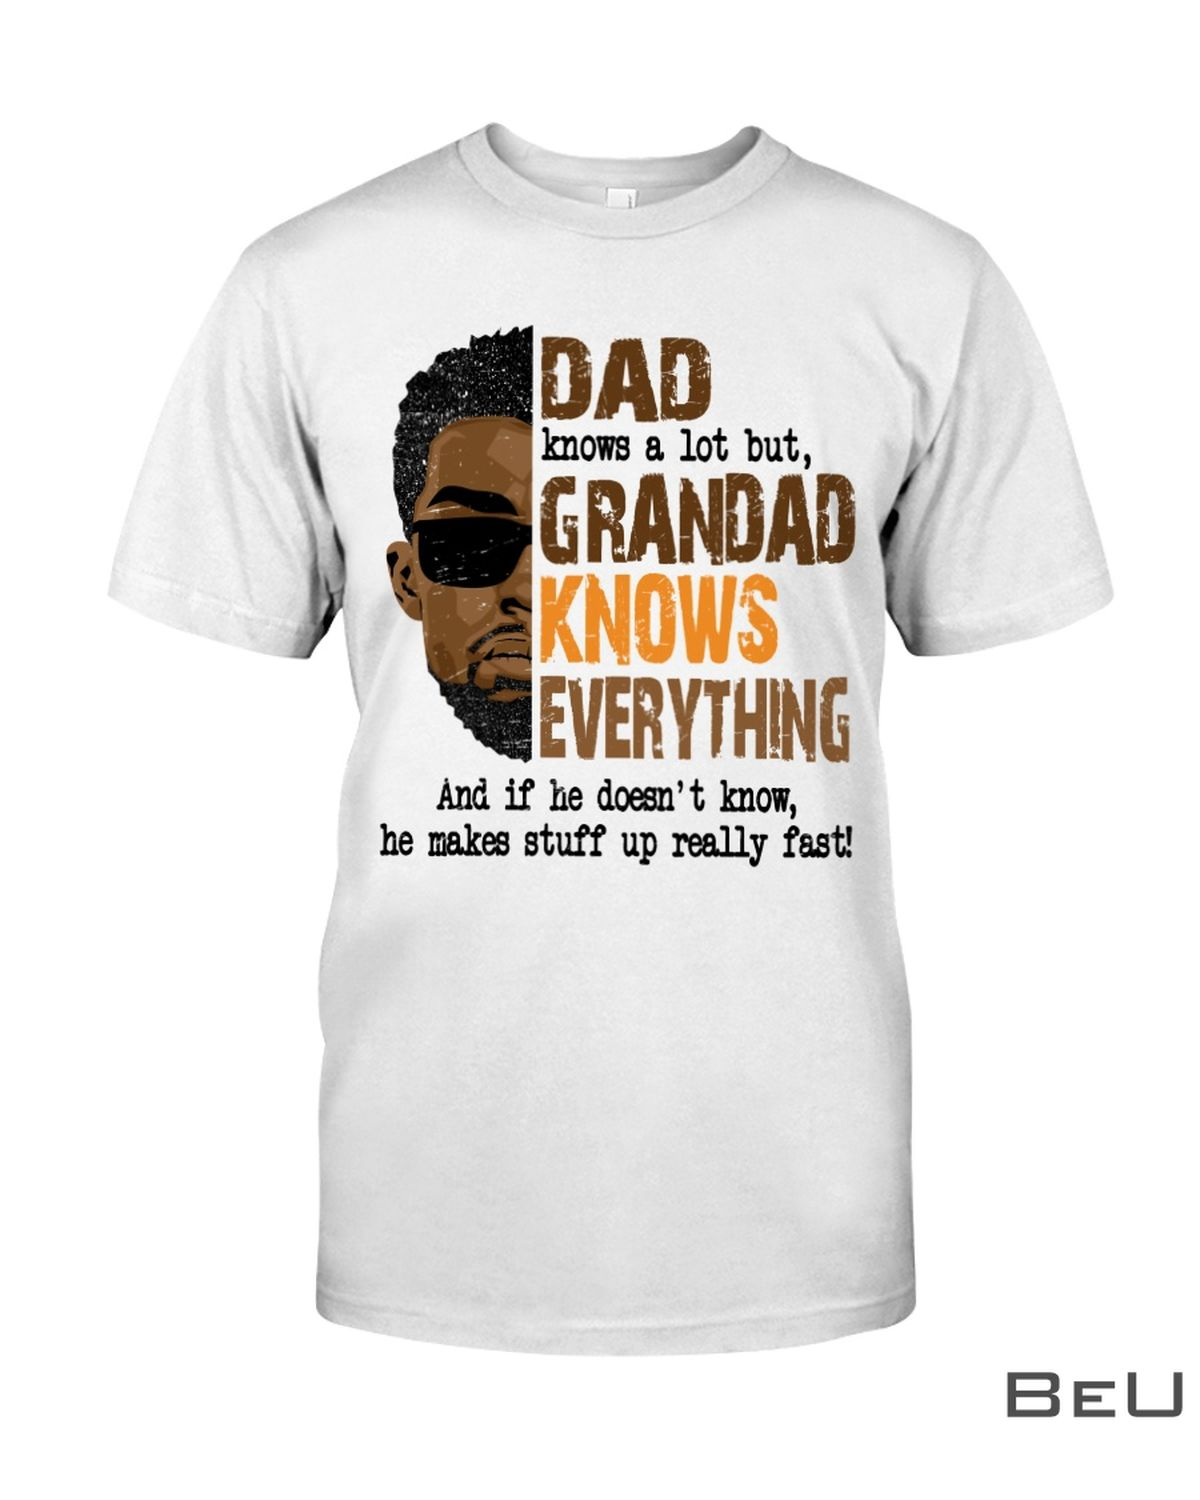 Black Dad Knows A Lot But Grandad Knows Everything Shirt